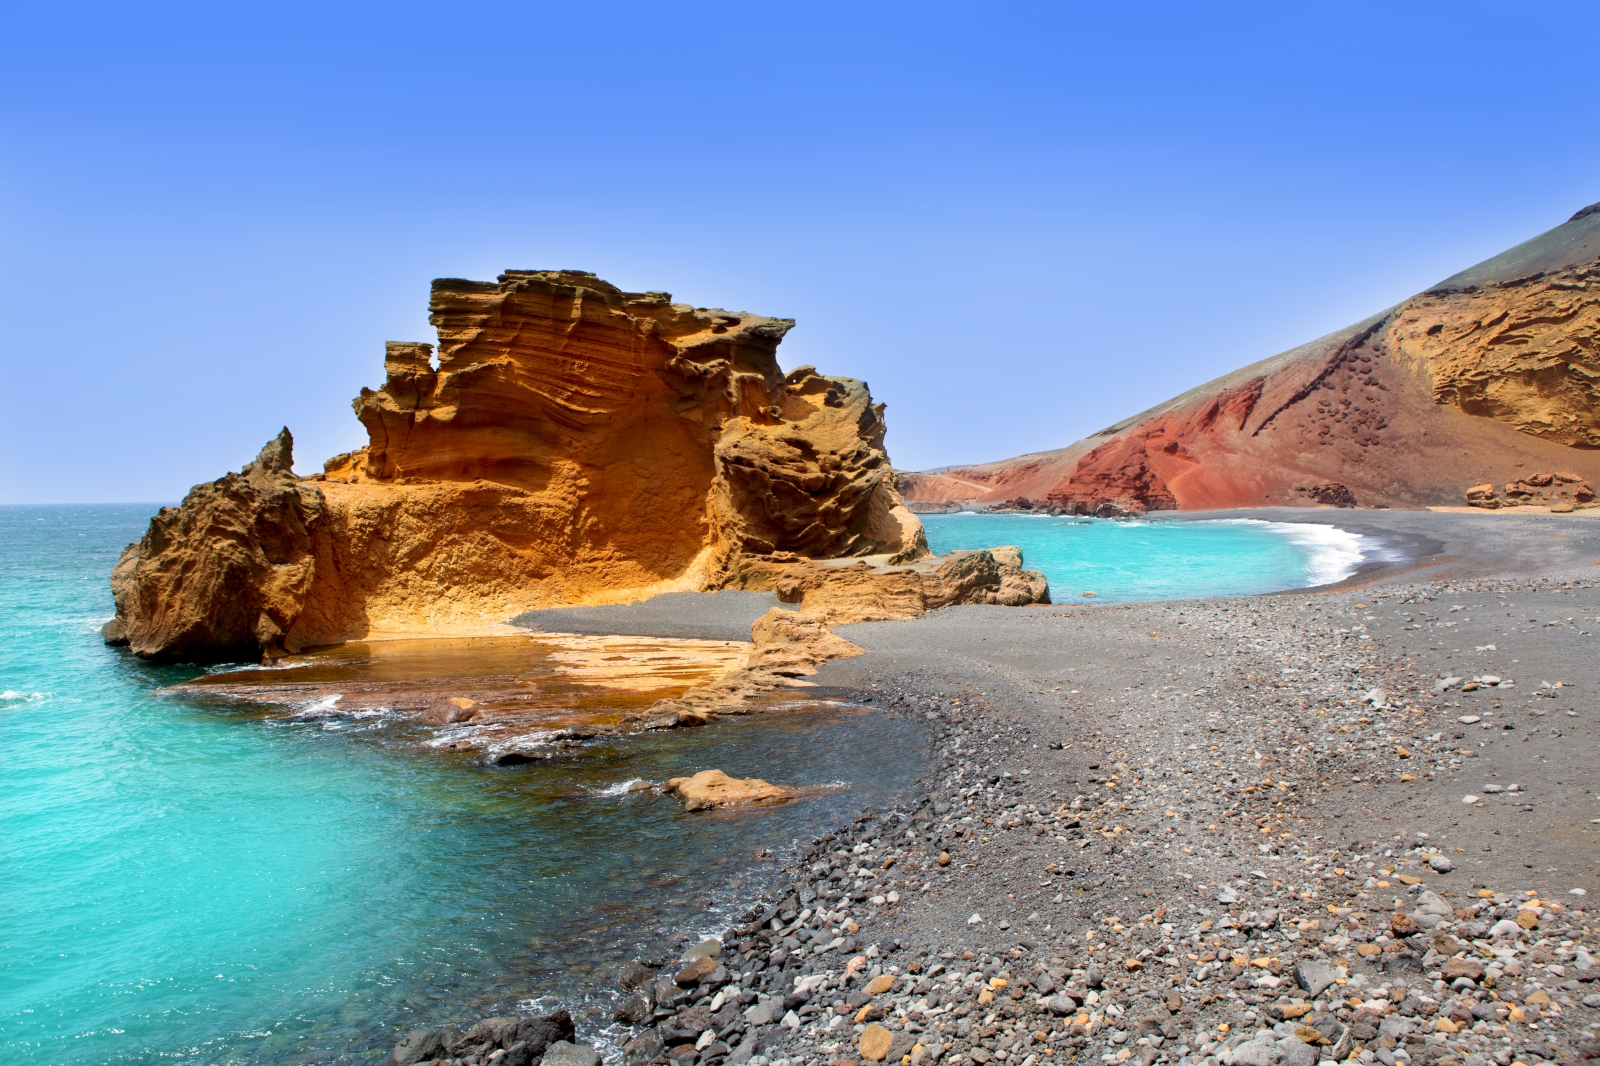 'Lanzarote El Golfo Atlantic ocean near Lago de los Clicos in Canary Islands' - Lanzarote